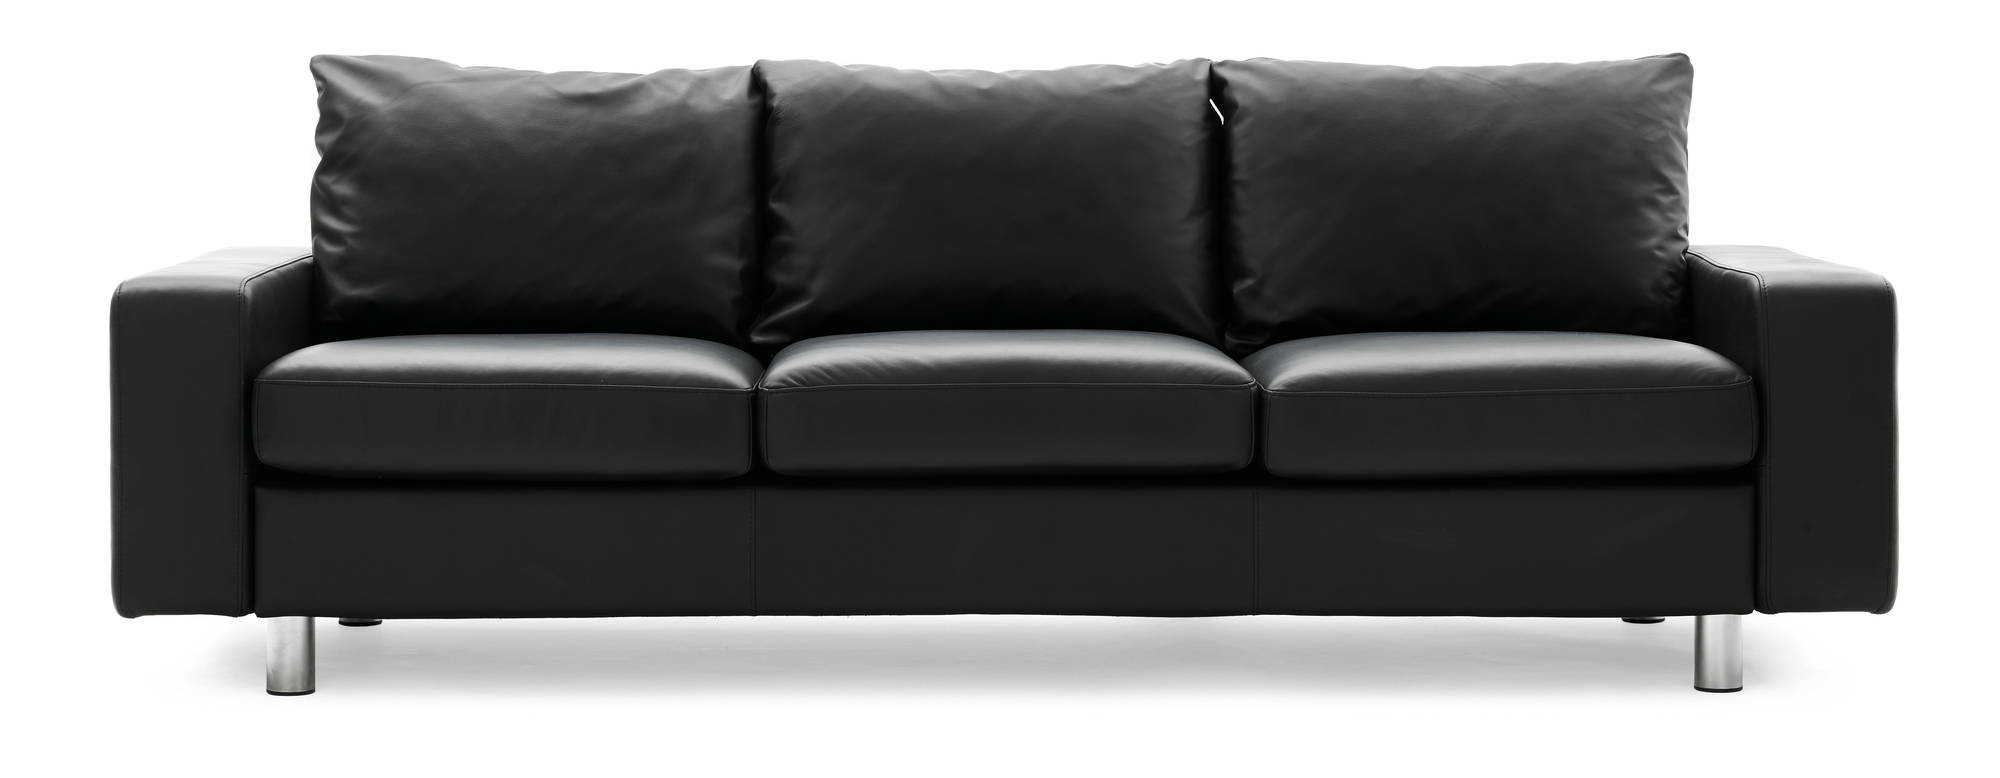 E200 Stressless Sofa Shown In Black Paloma  Saves 20% Instantly.